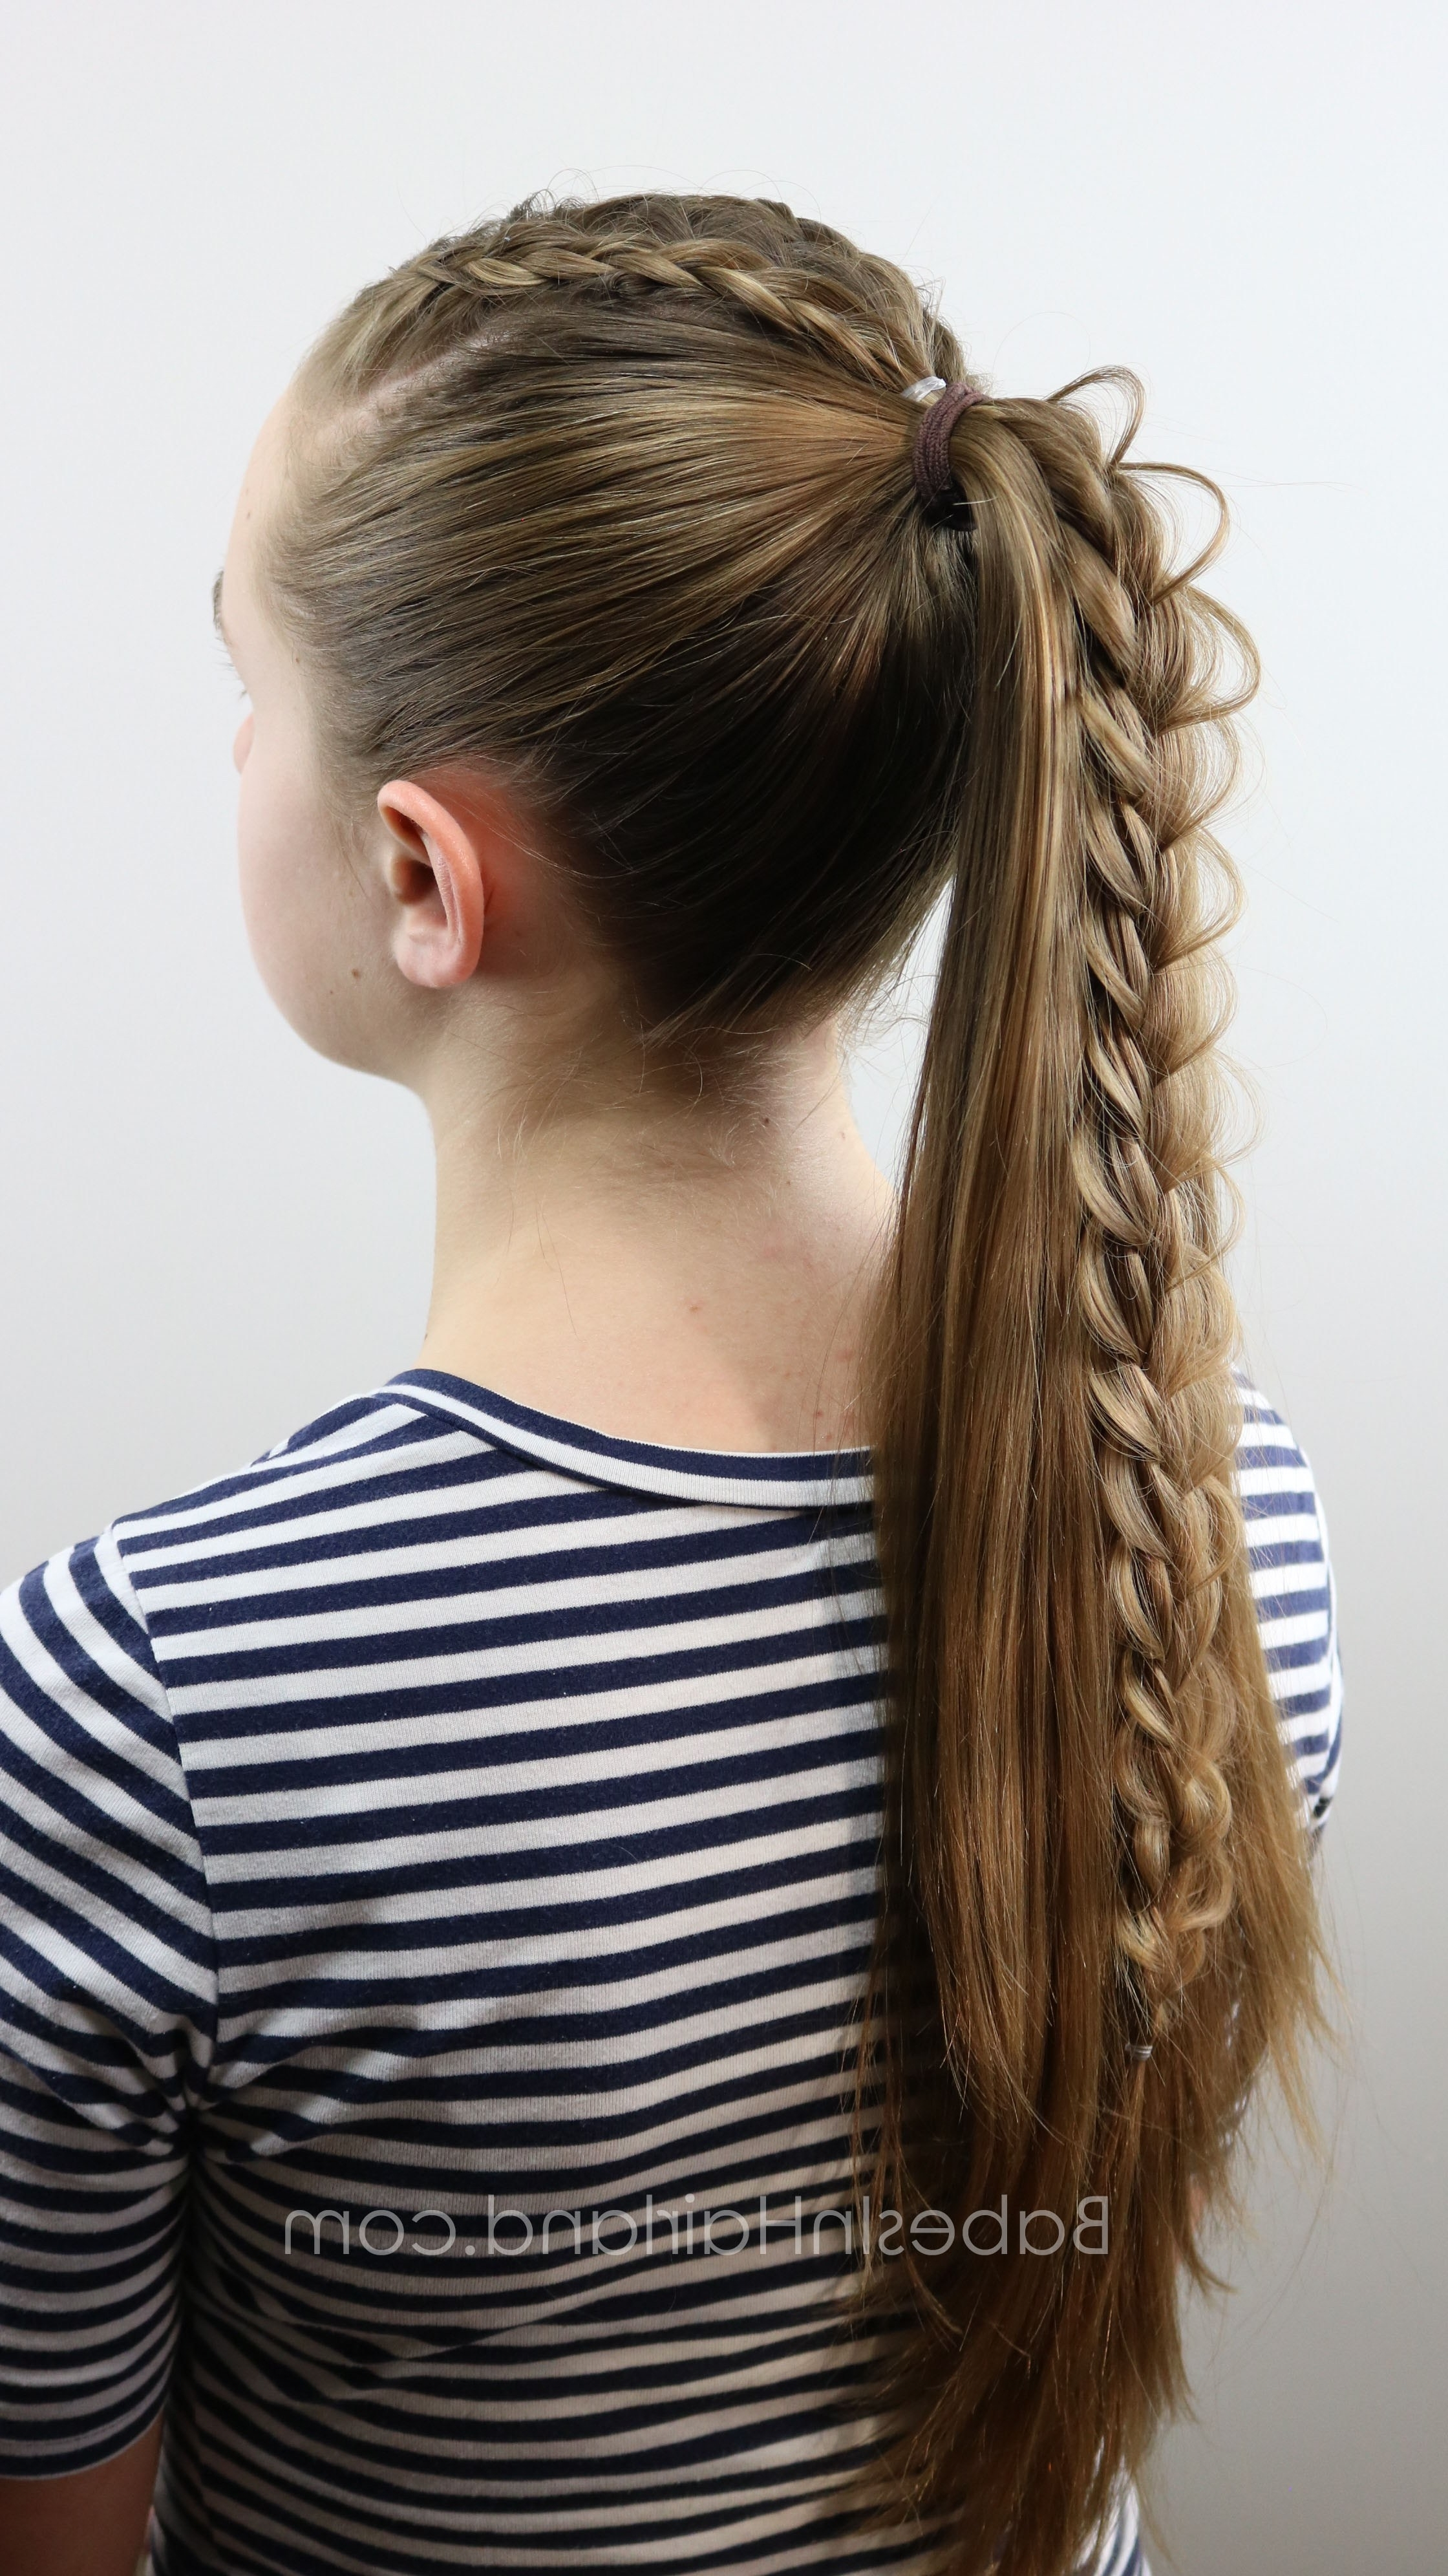 2018 High Braided Pony Hairstyles With Peek A Boo Bangs With Regard To 2 Dutch Braids 5 Different Hairstyles (View 2 of 20)